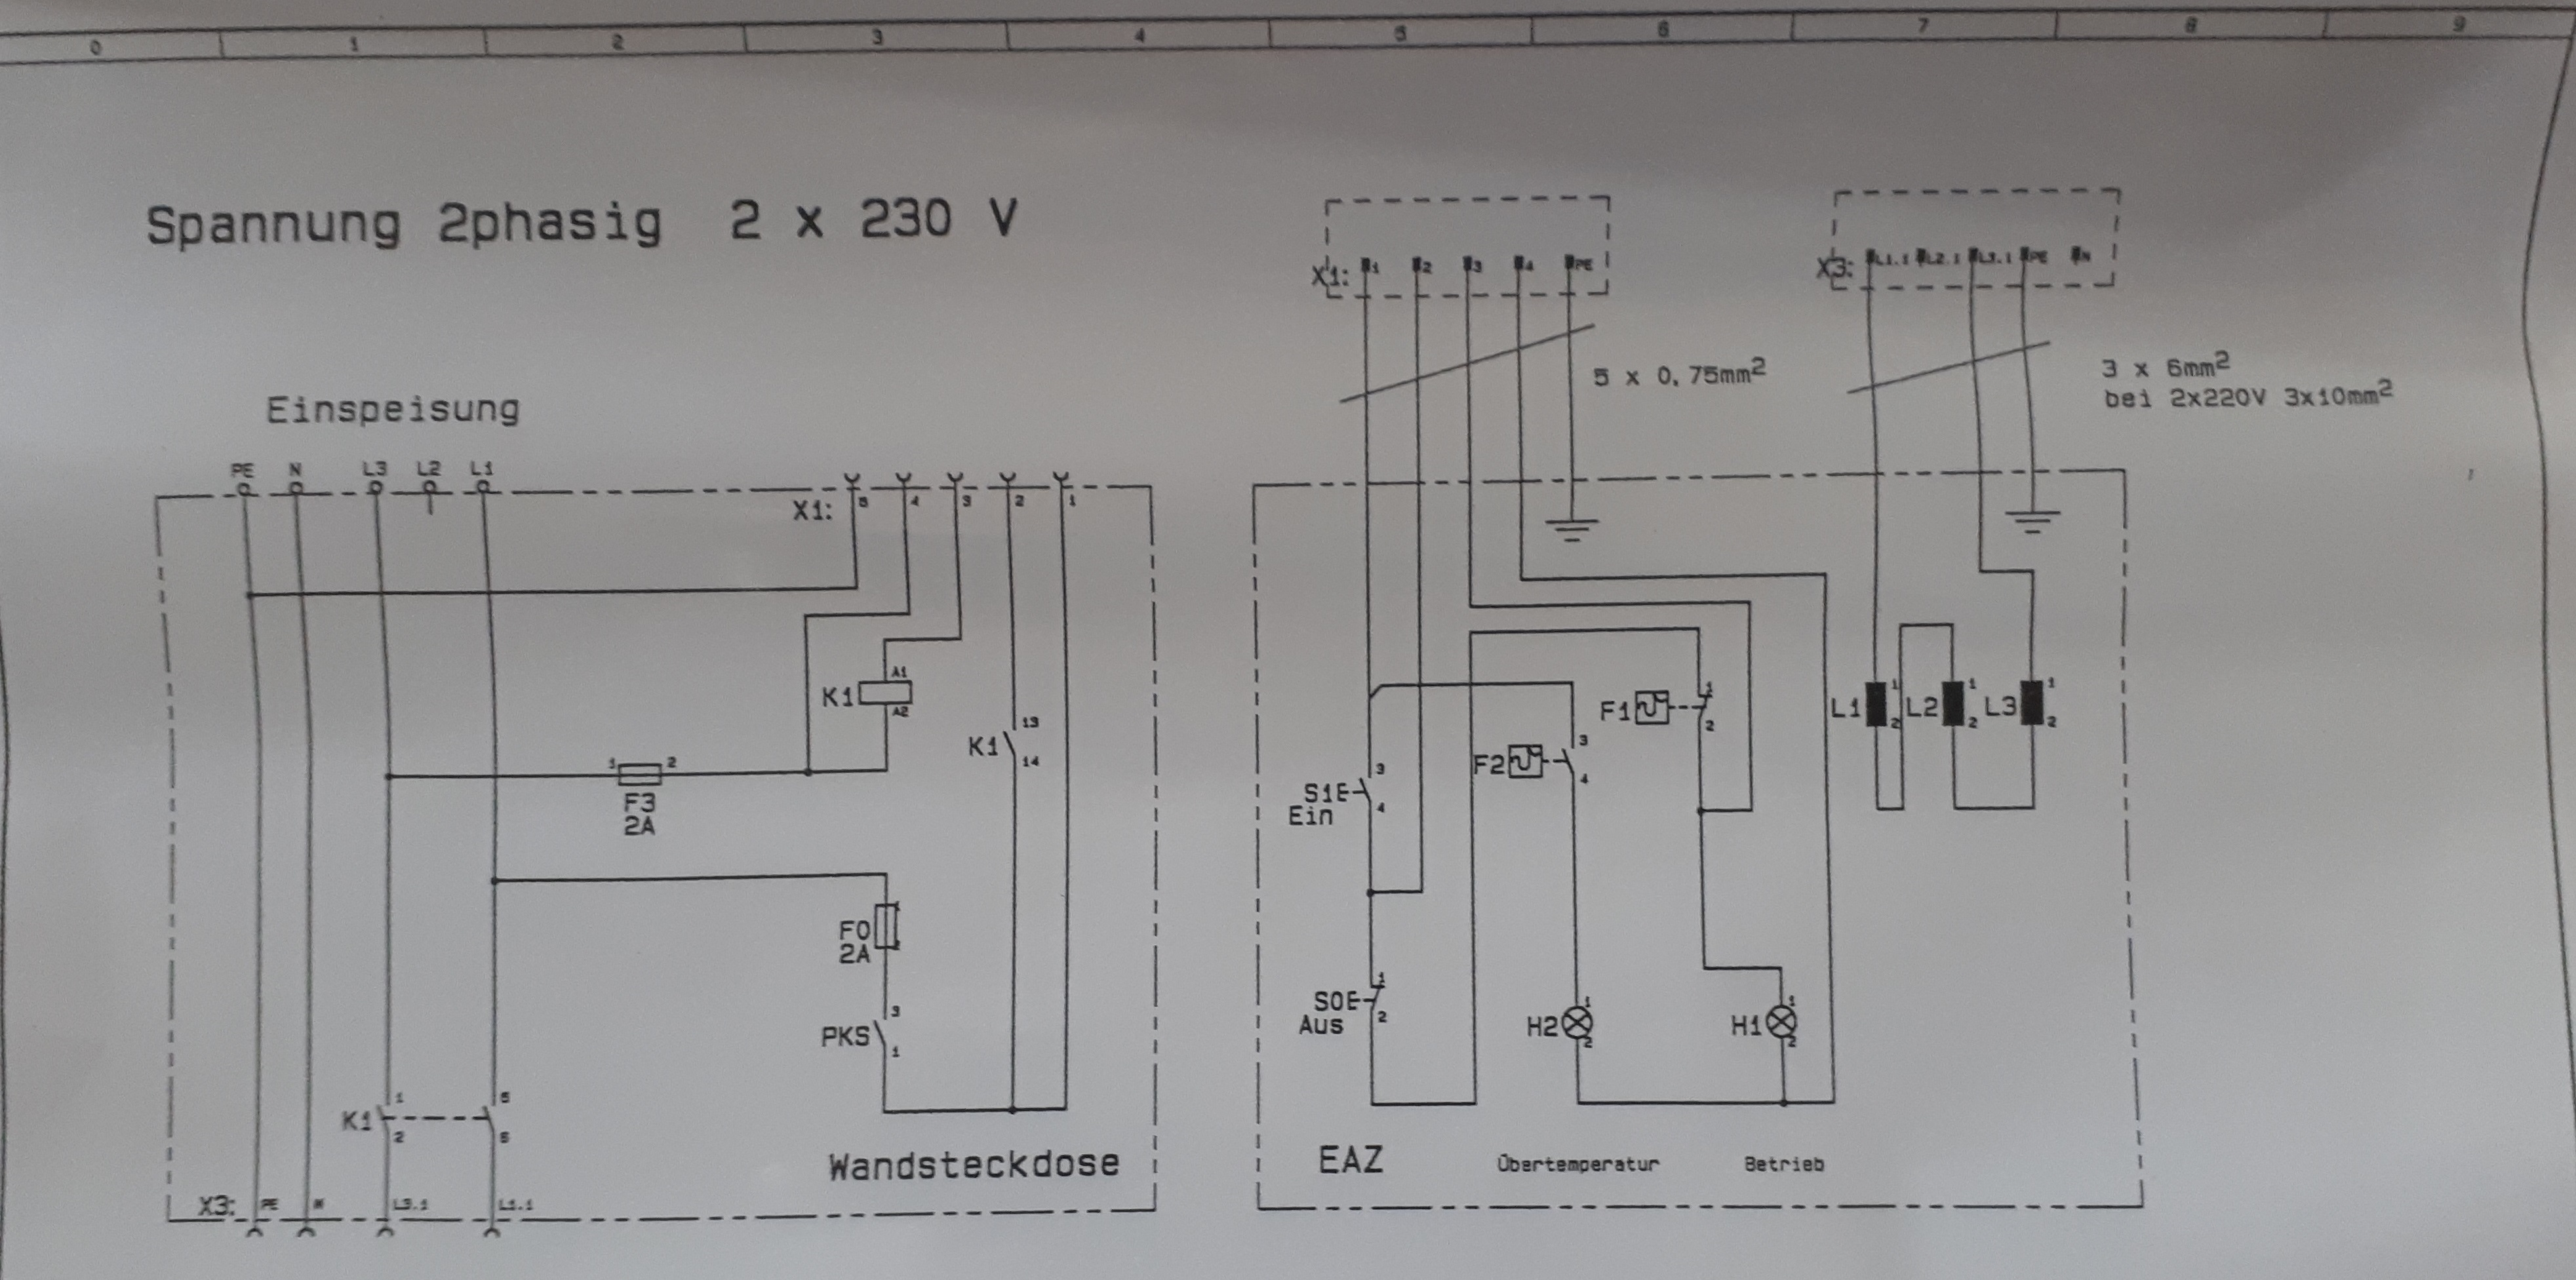 Motor Wiring Diagram 3 Phase Delta Wye Transformer Diagrams 3 Phase